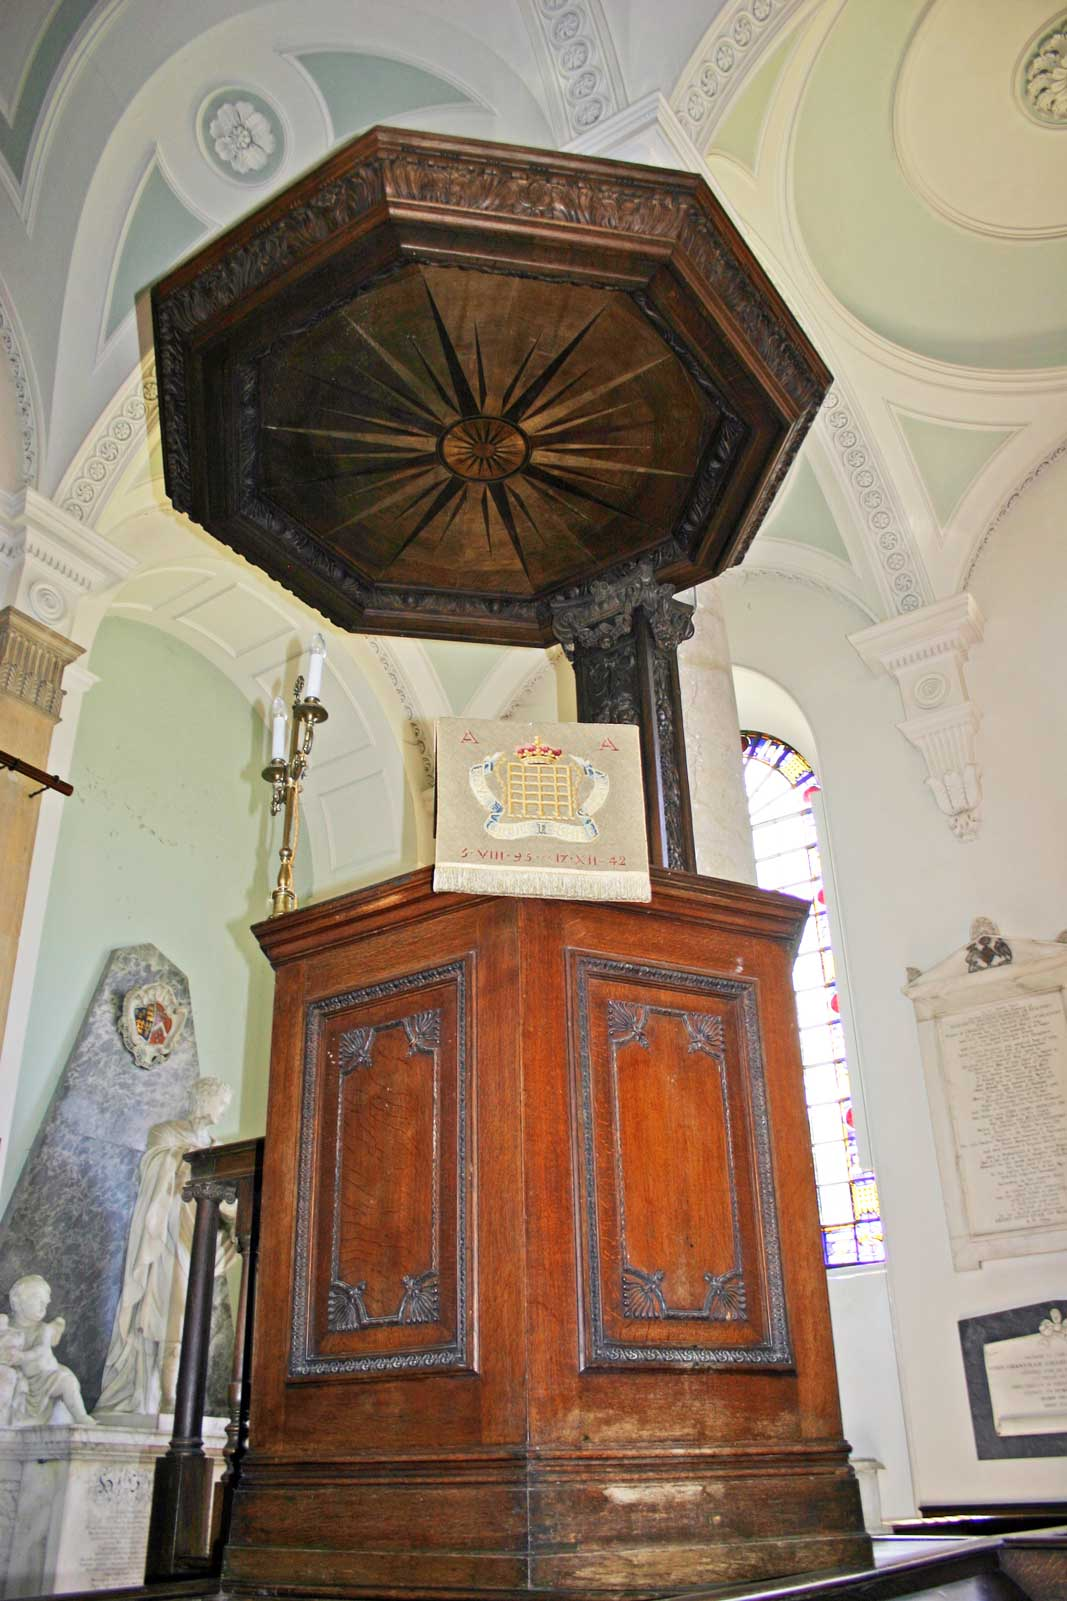 The Pulpit at Great Badminton